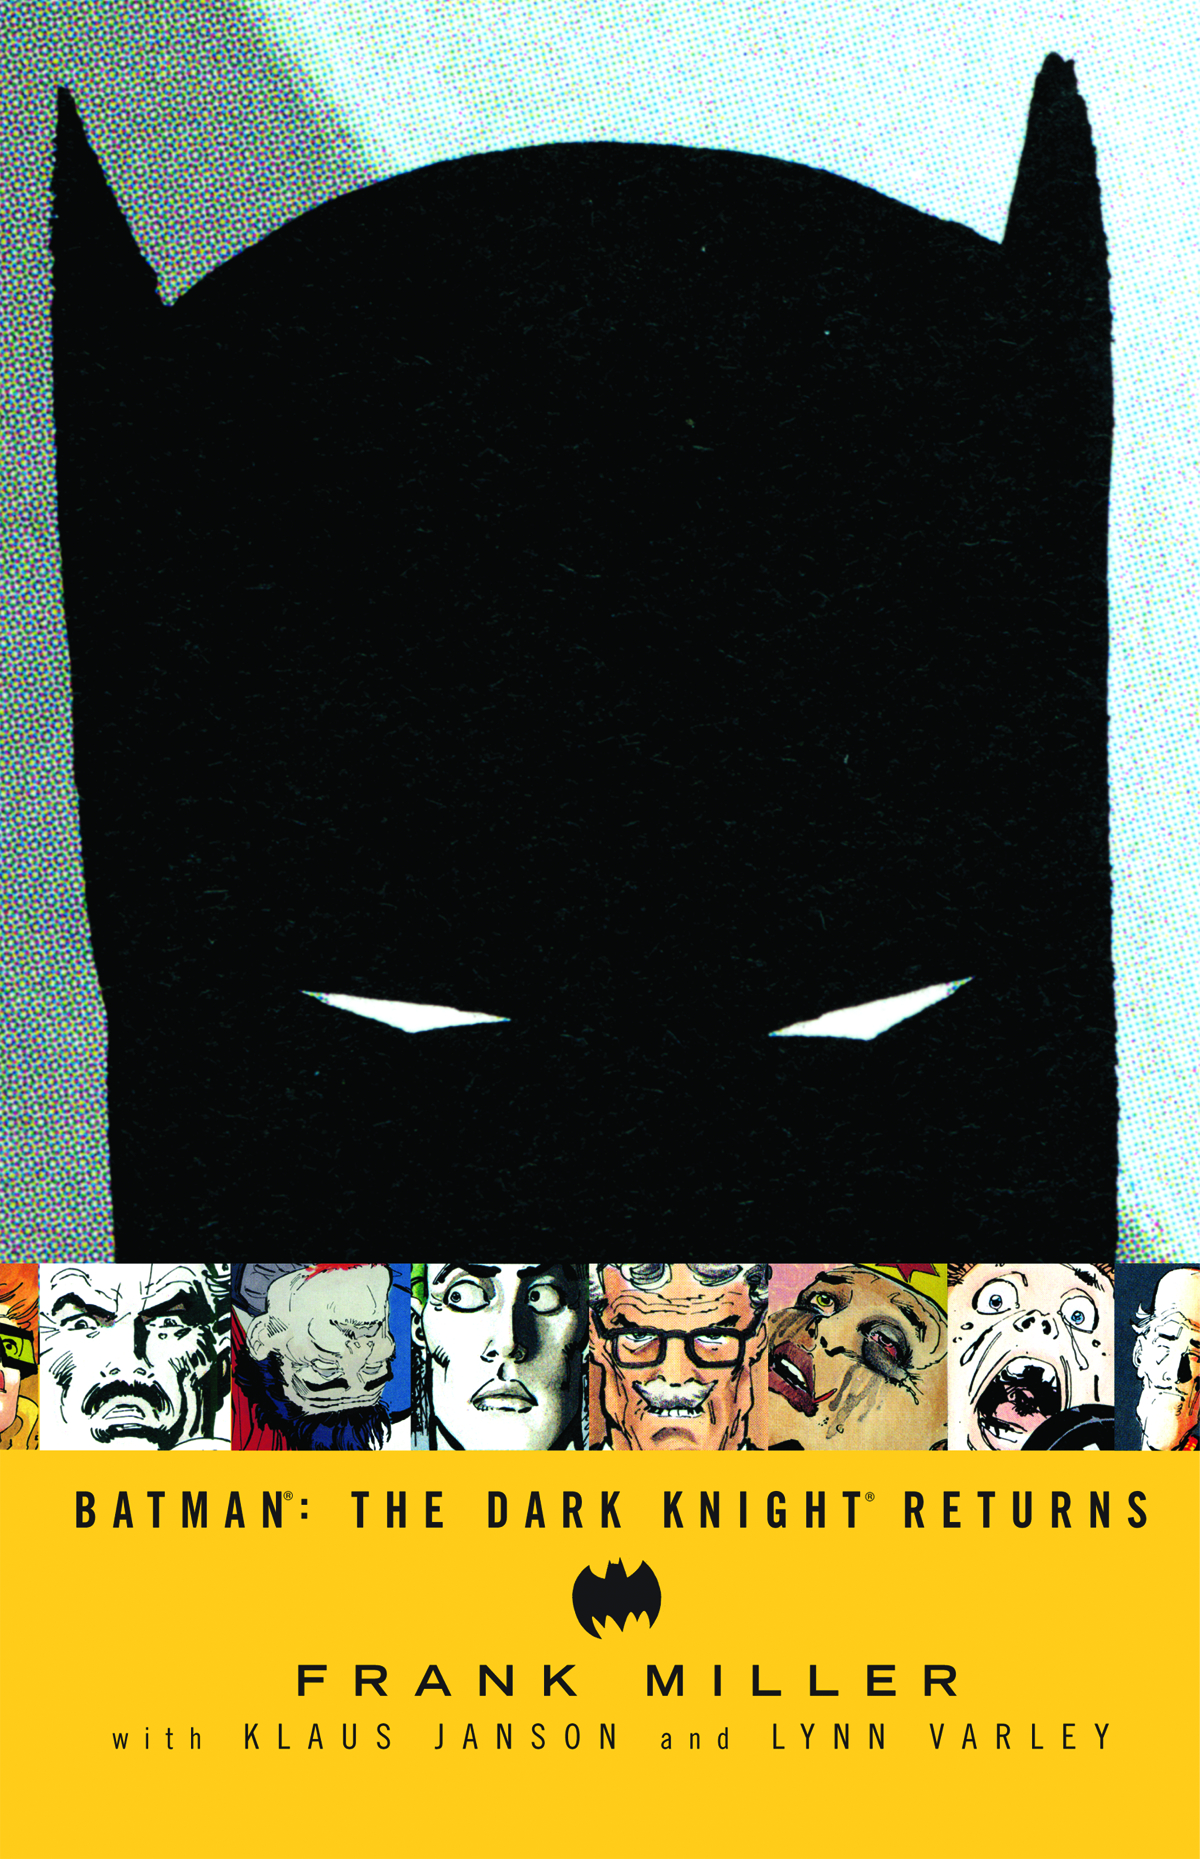 BATMAN ESSENTIALS DARK KNIGHT RETURNS SPEC ED #1